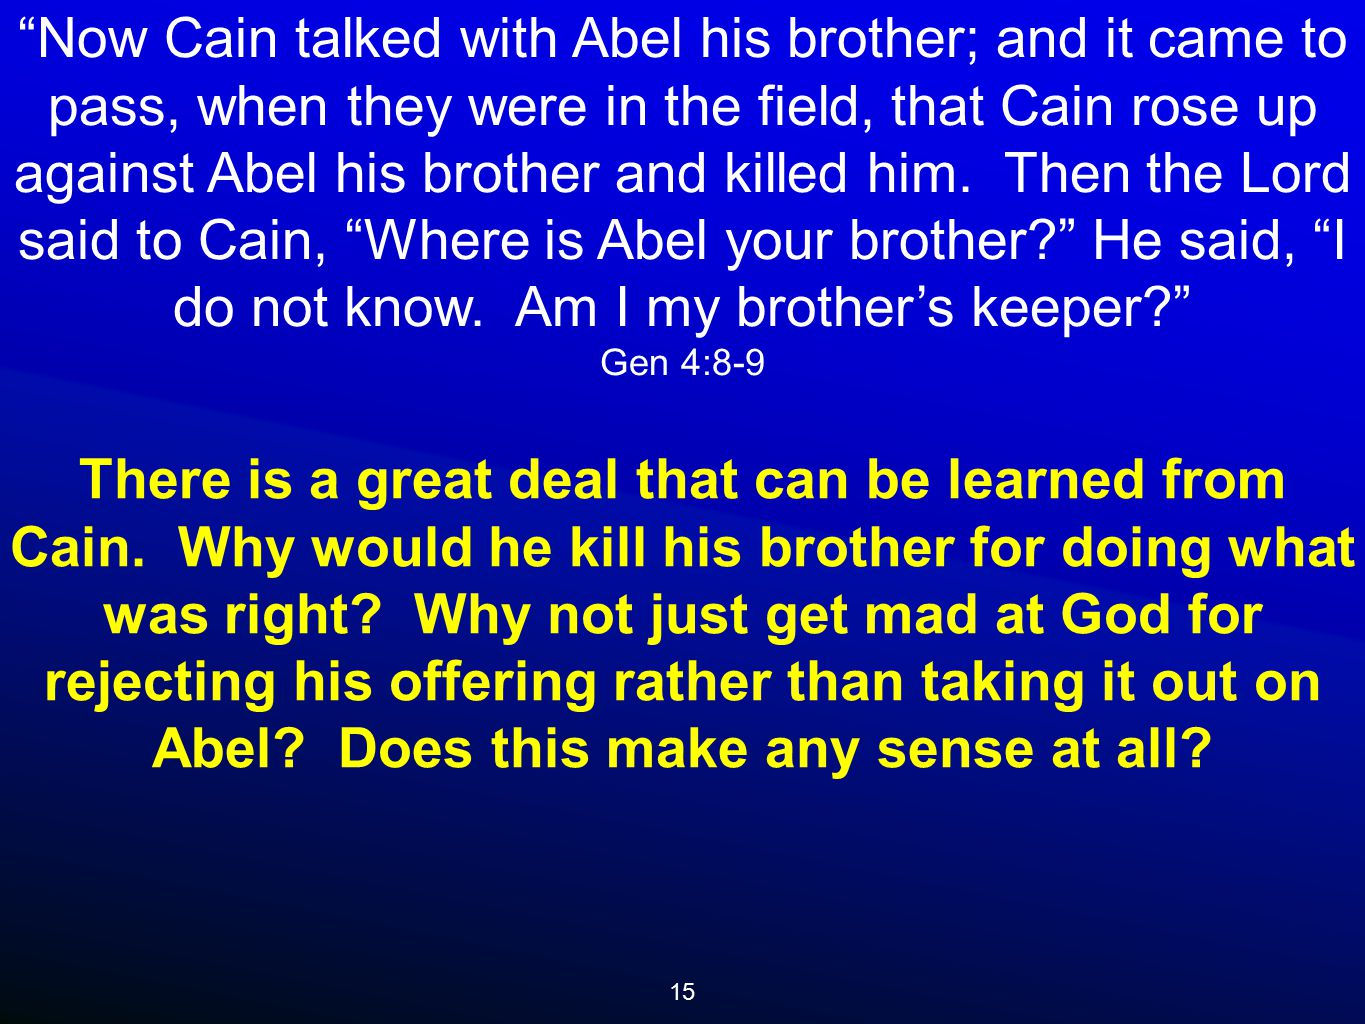 15 Now Cain talked with Abel his brother; and it came to pass, when they were in the field, that Cain rose up against Abel his brother and killed him.